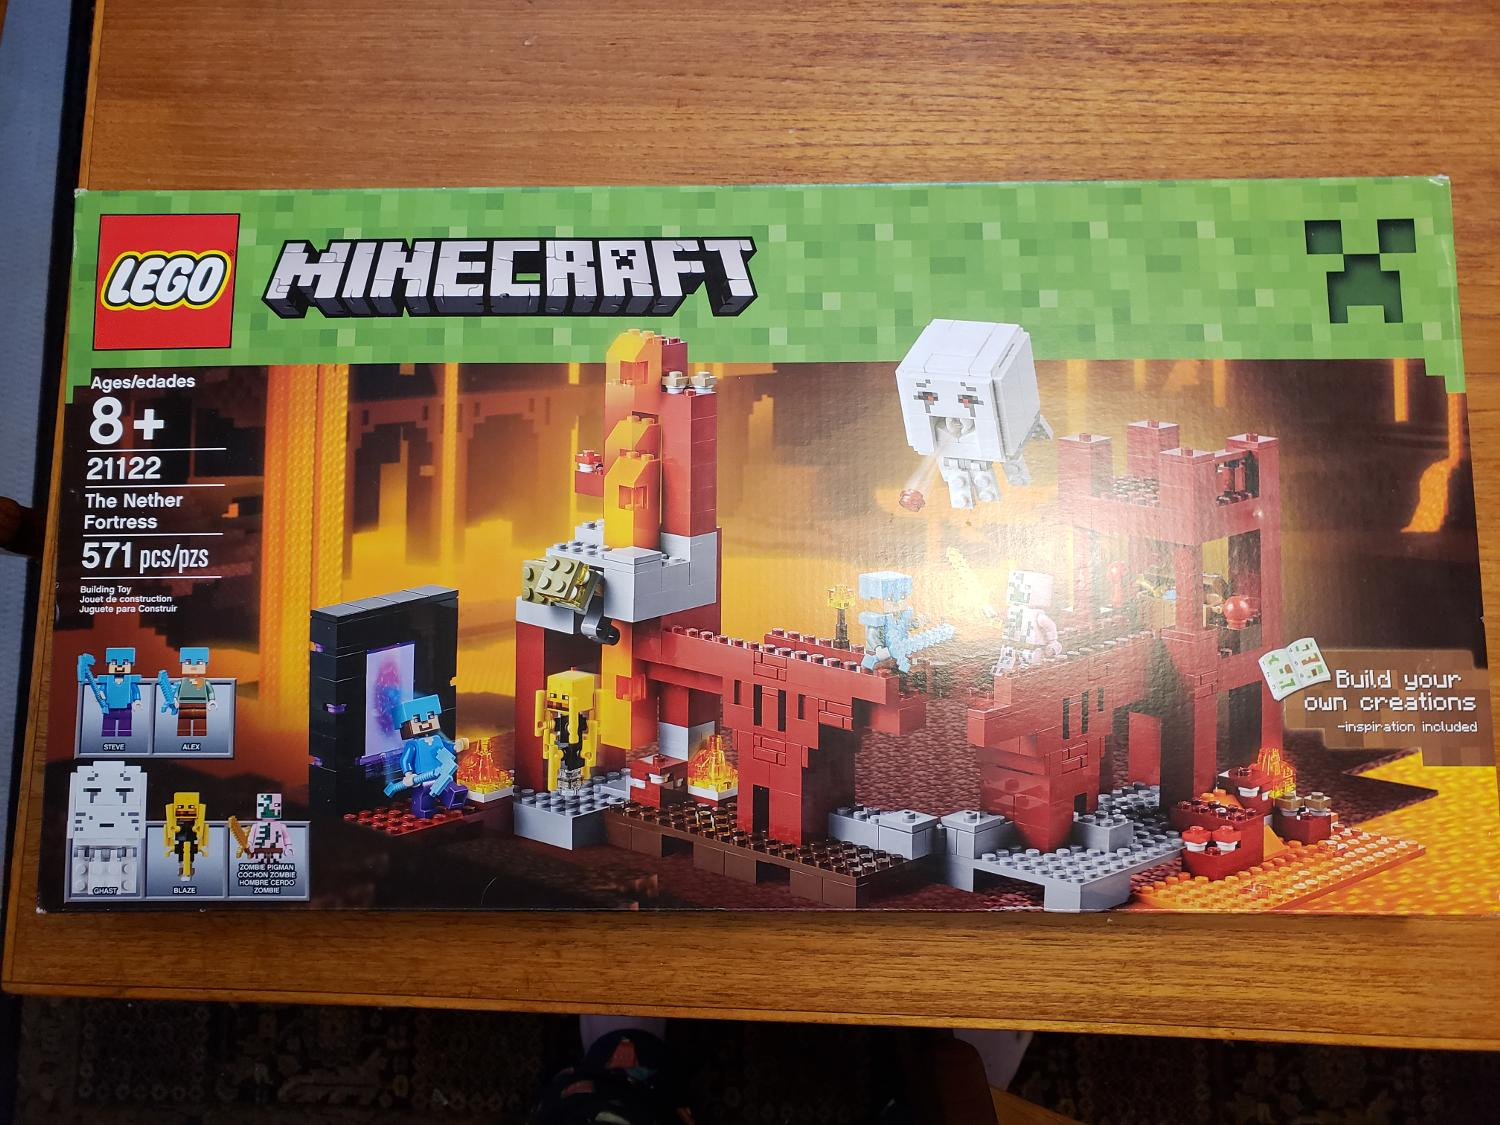 New in sealed Box Lego Minecraft Nether Fortress - retired